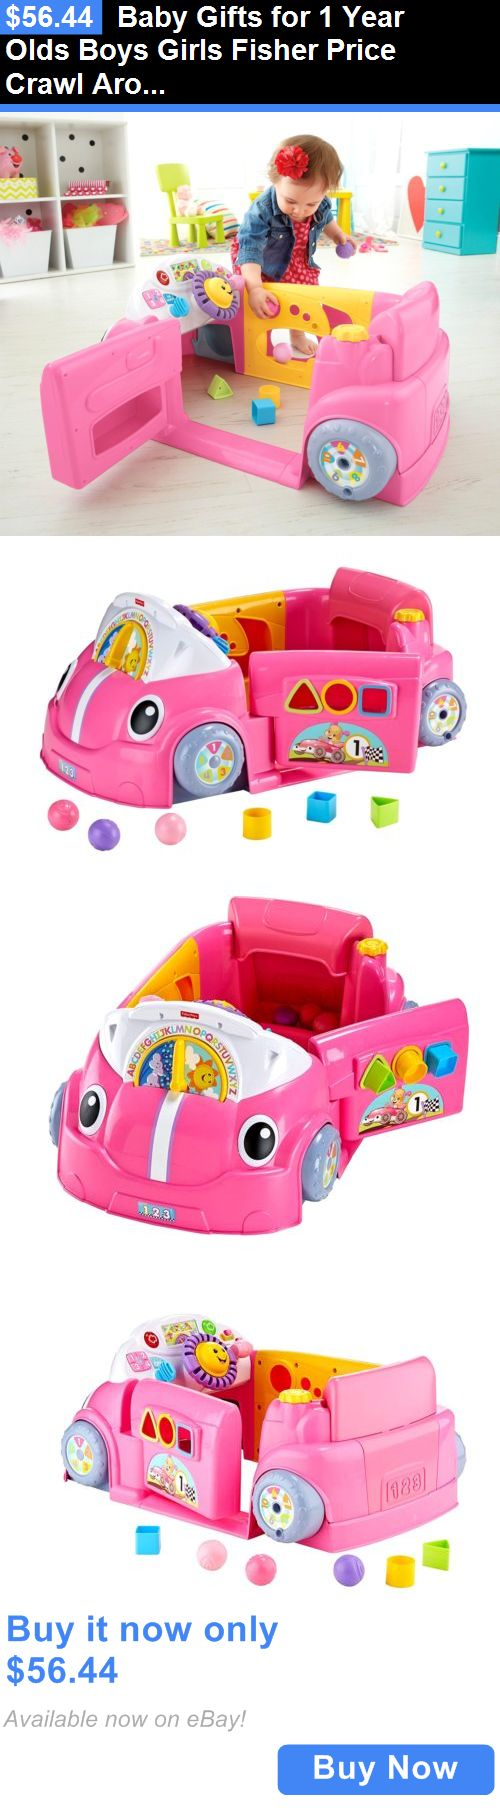 Baby Gifts For 1 Year Olds Boys Girls Fisher Price Crawl Around Car Toddler